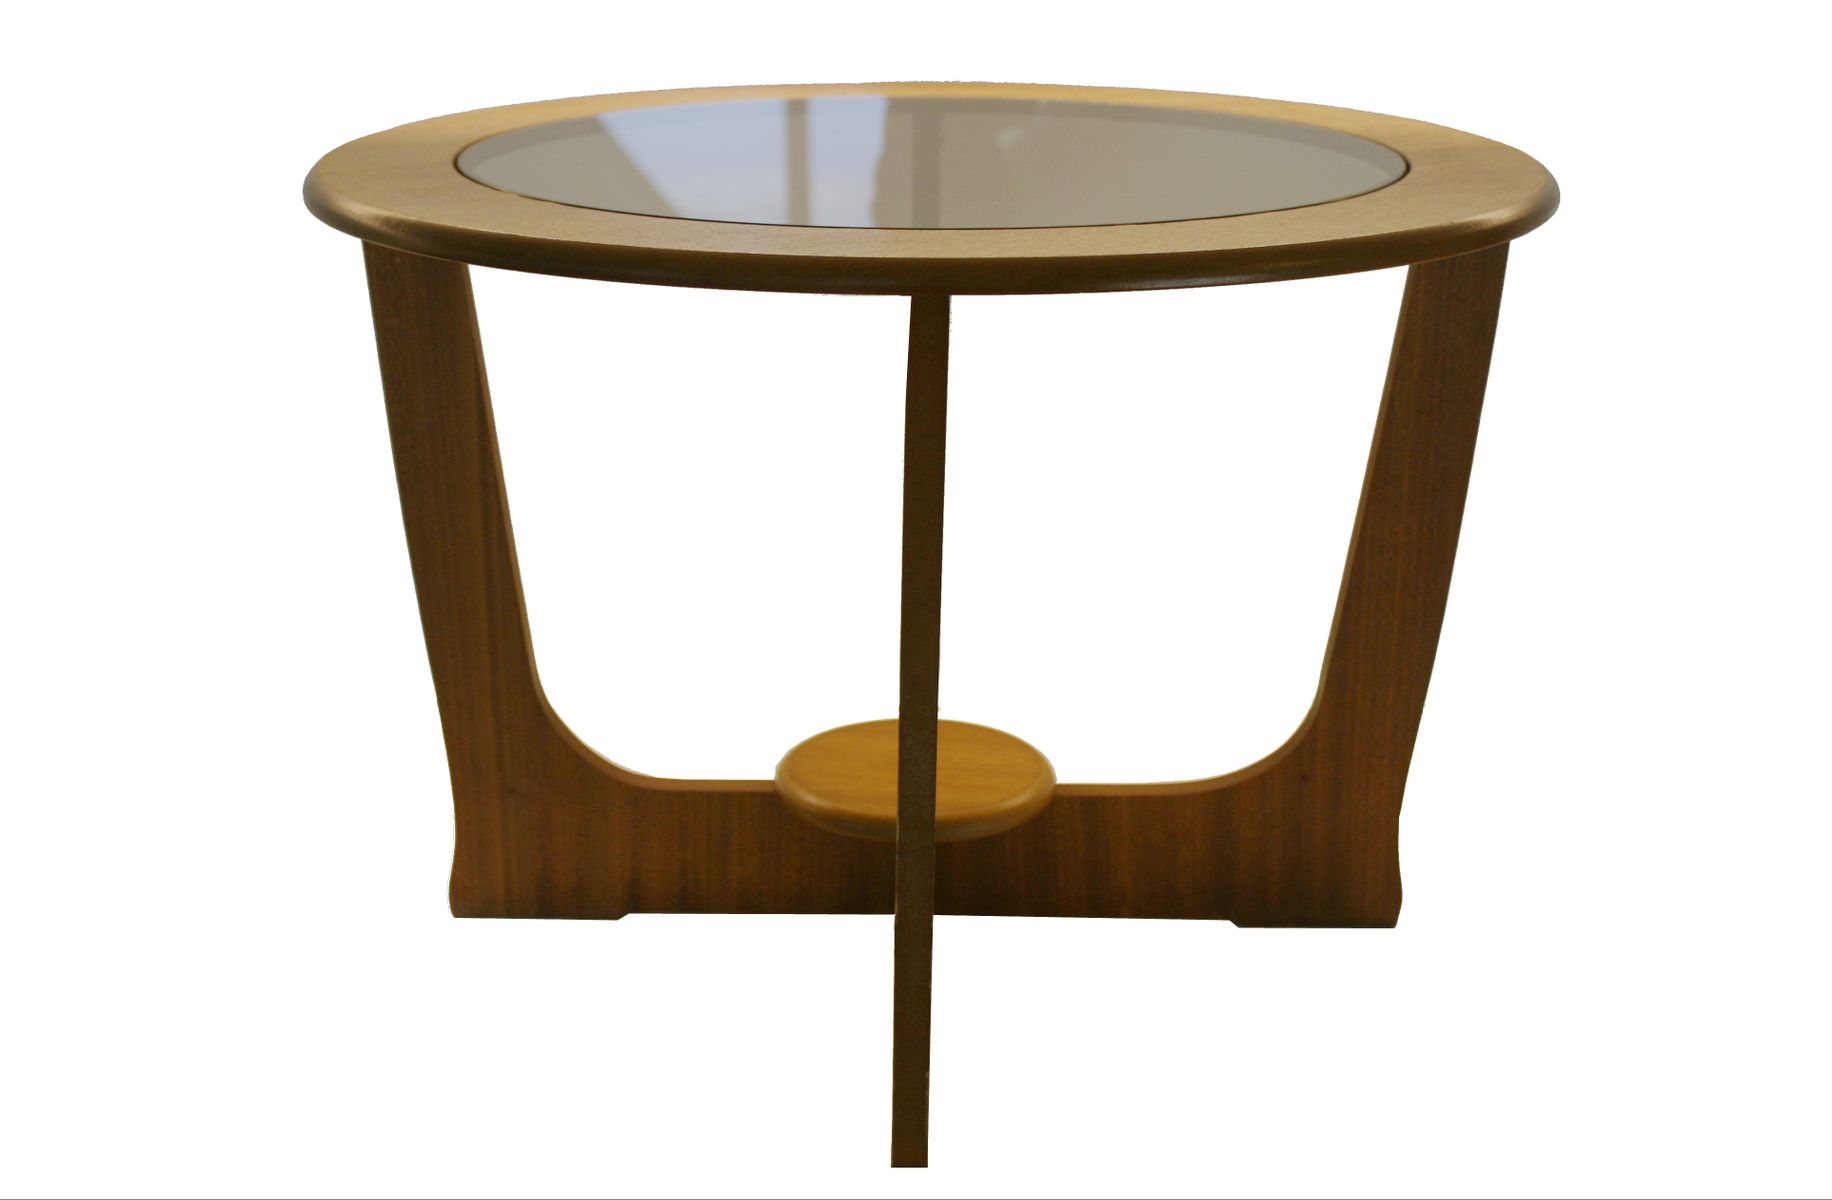 Vintage British Round Teak Coffee Table 1960s For Sale At Pamono